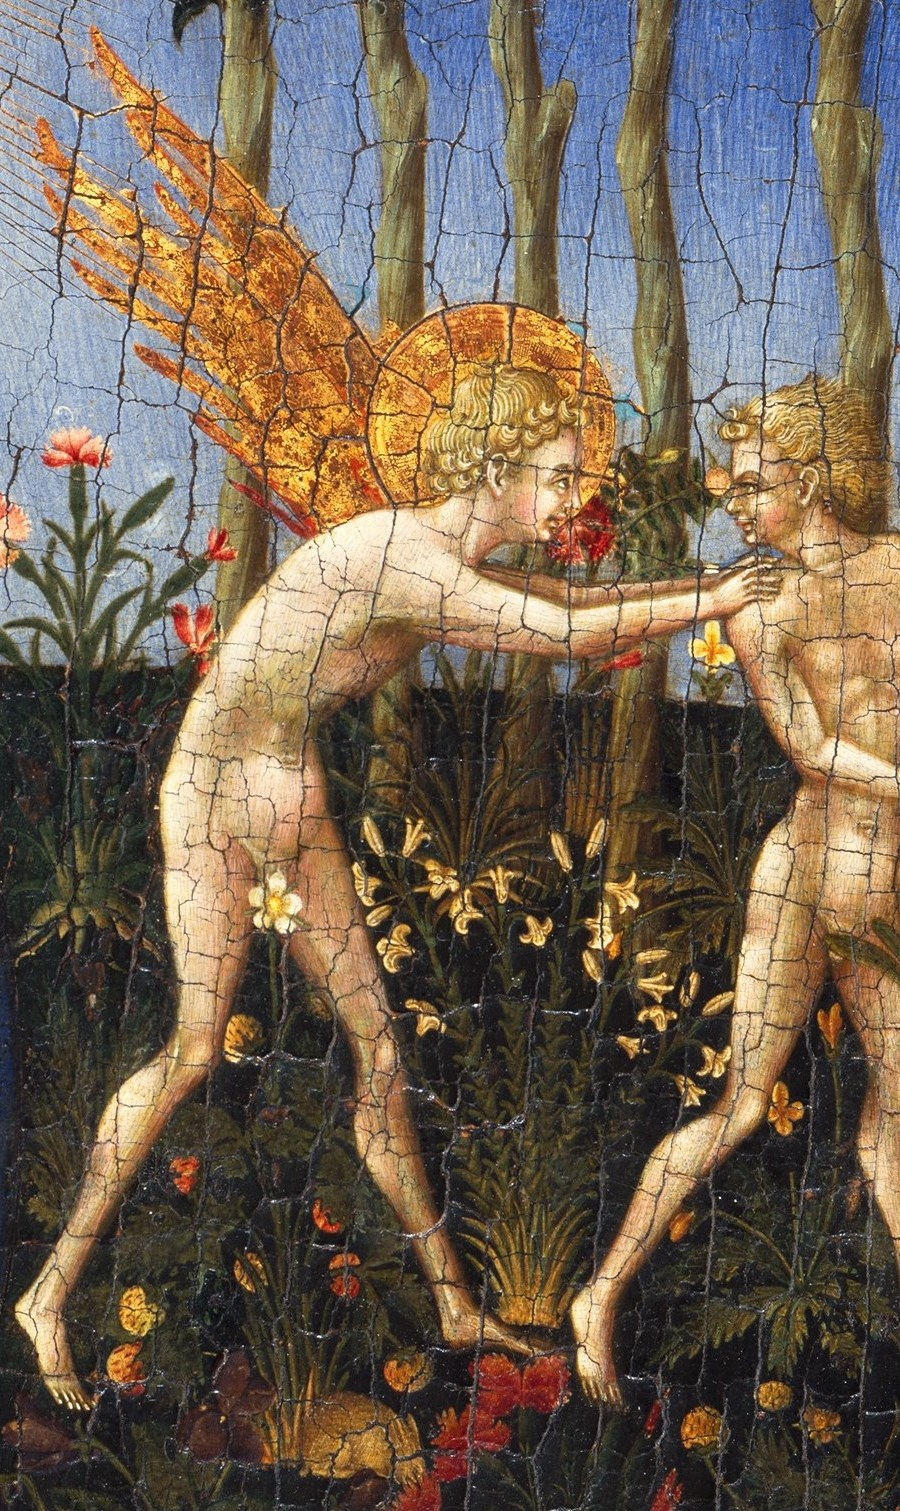 giovanni-di-paolo-creation-and-the-expulsion-from-the-paradise-1445c-det2.jpg